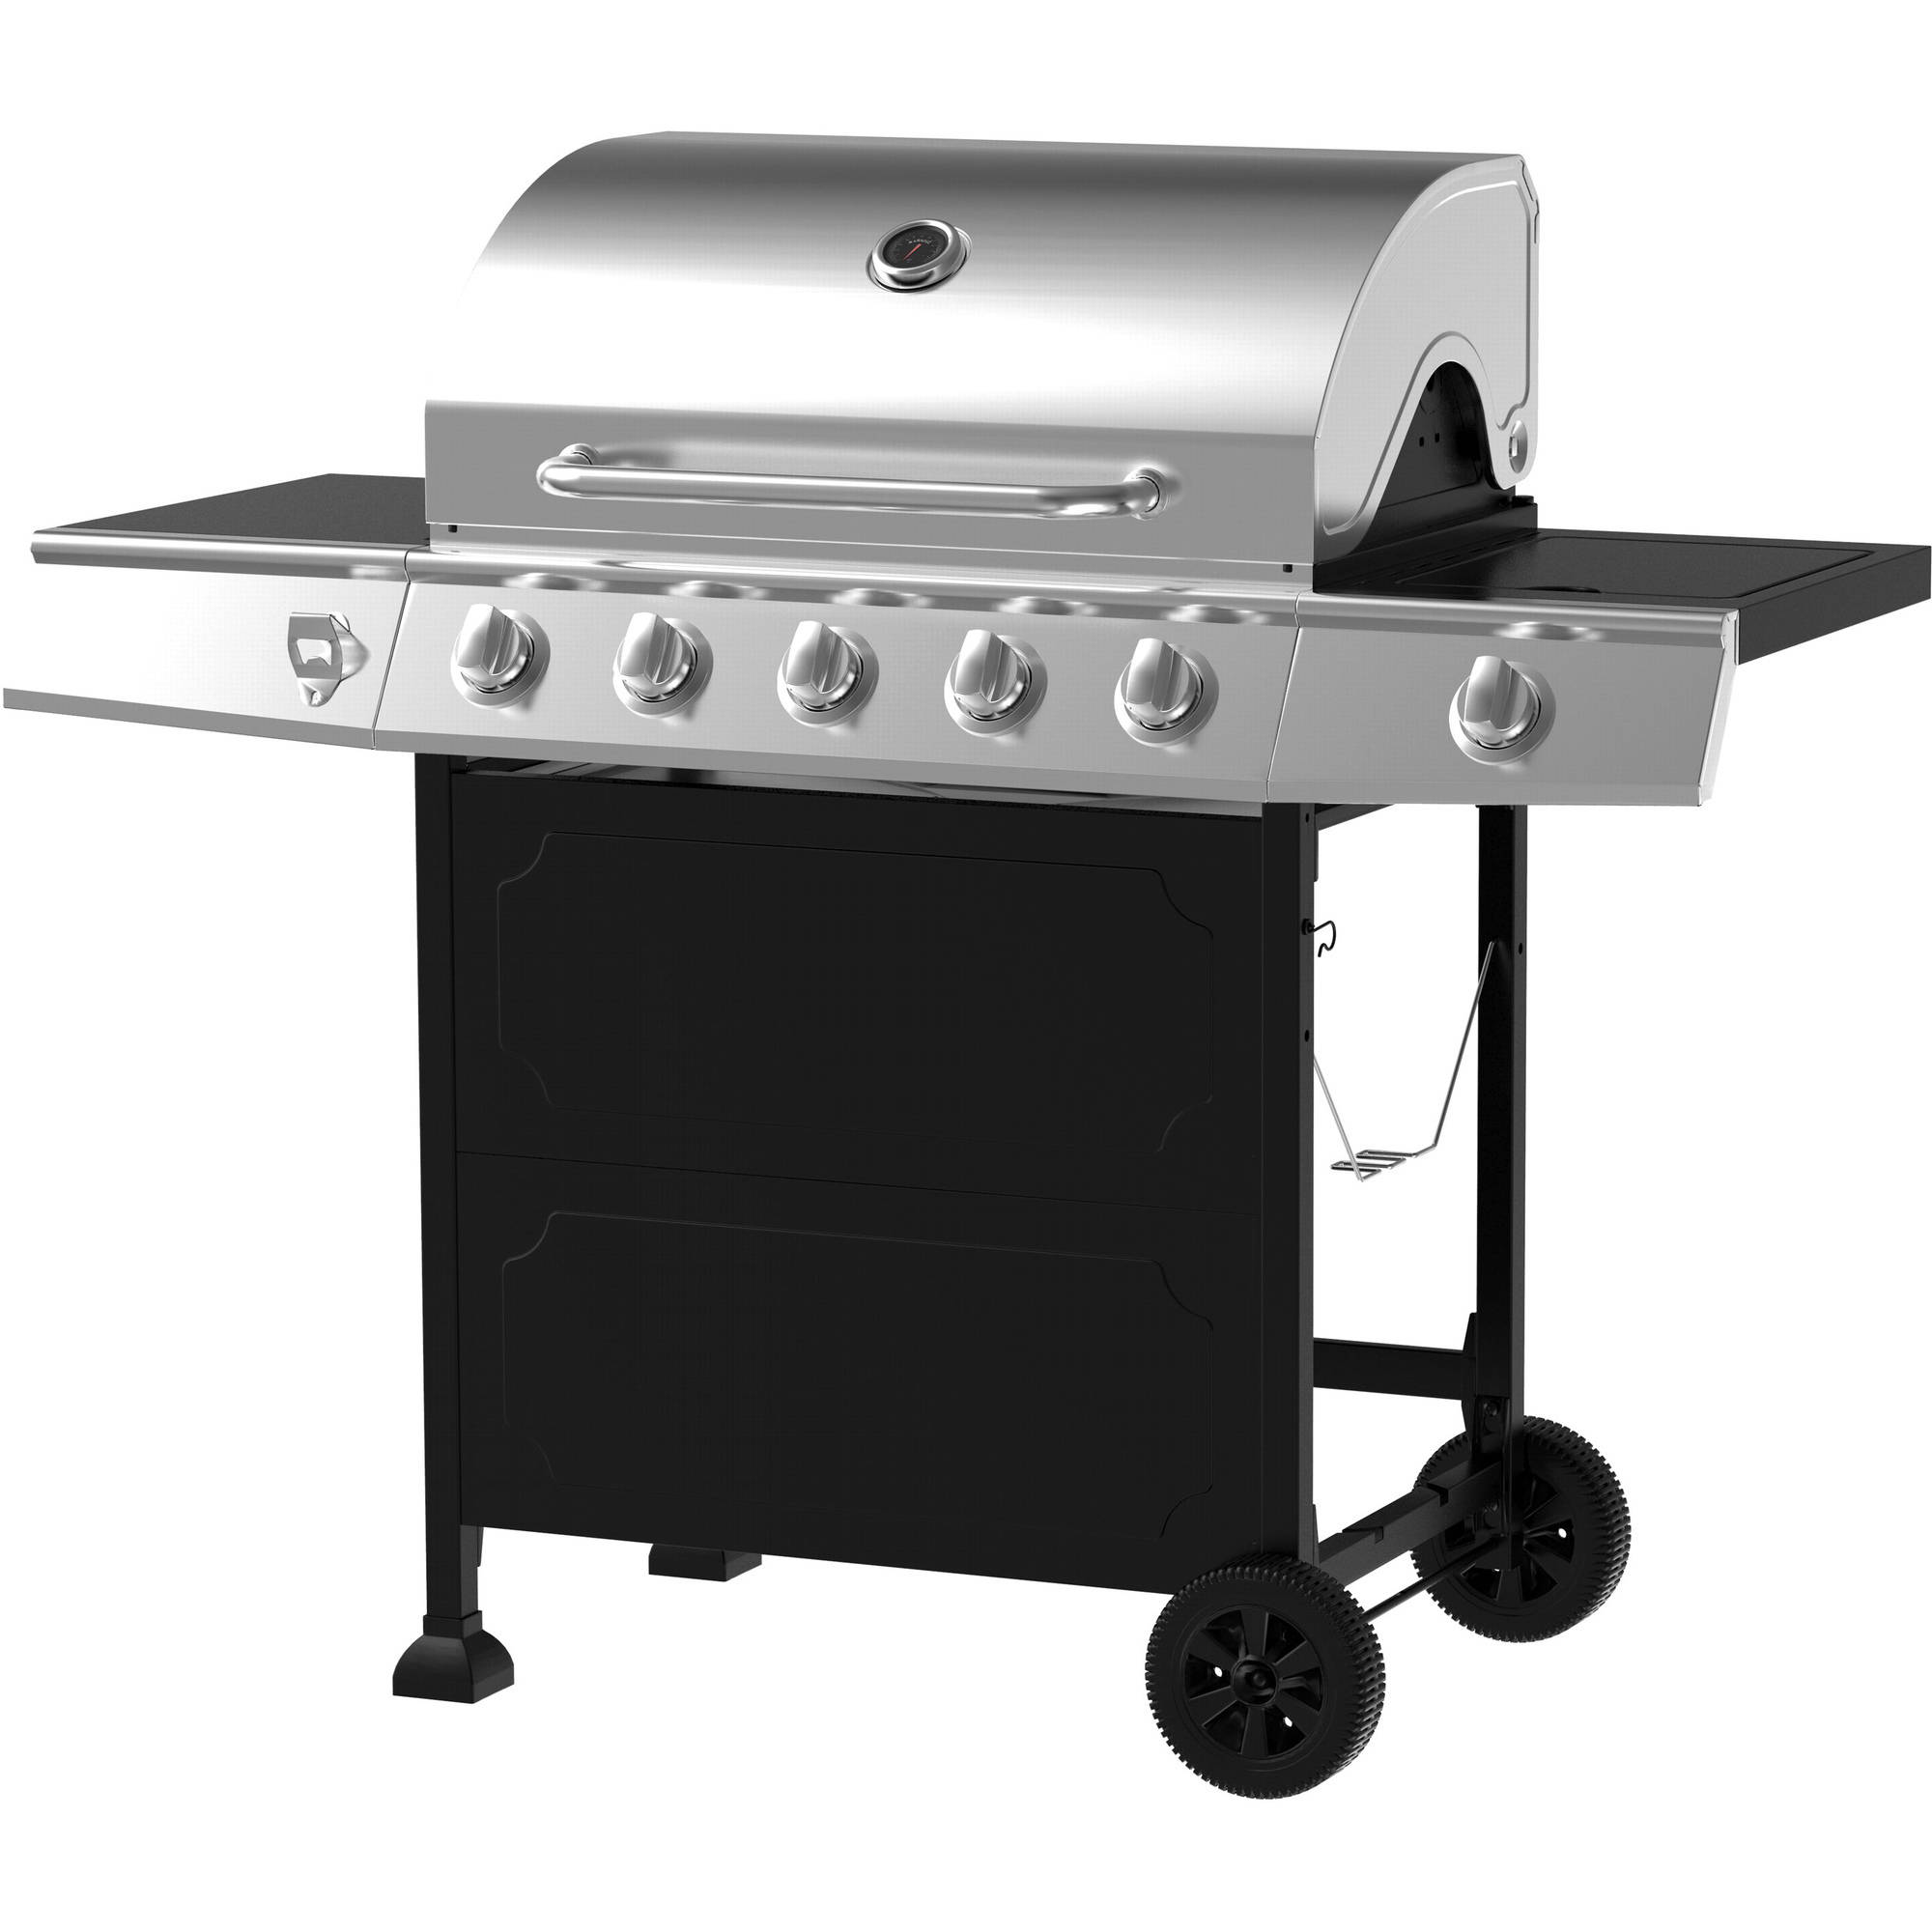 gas grill stainless steel 5 burner outdoor cooking patio garden